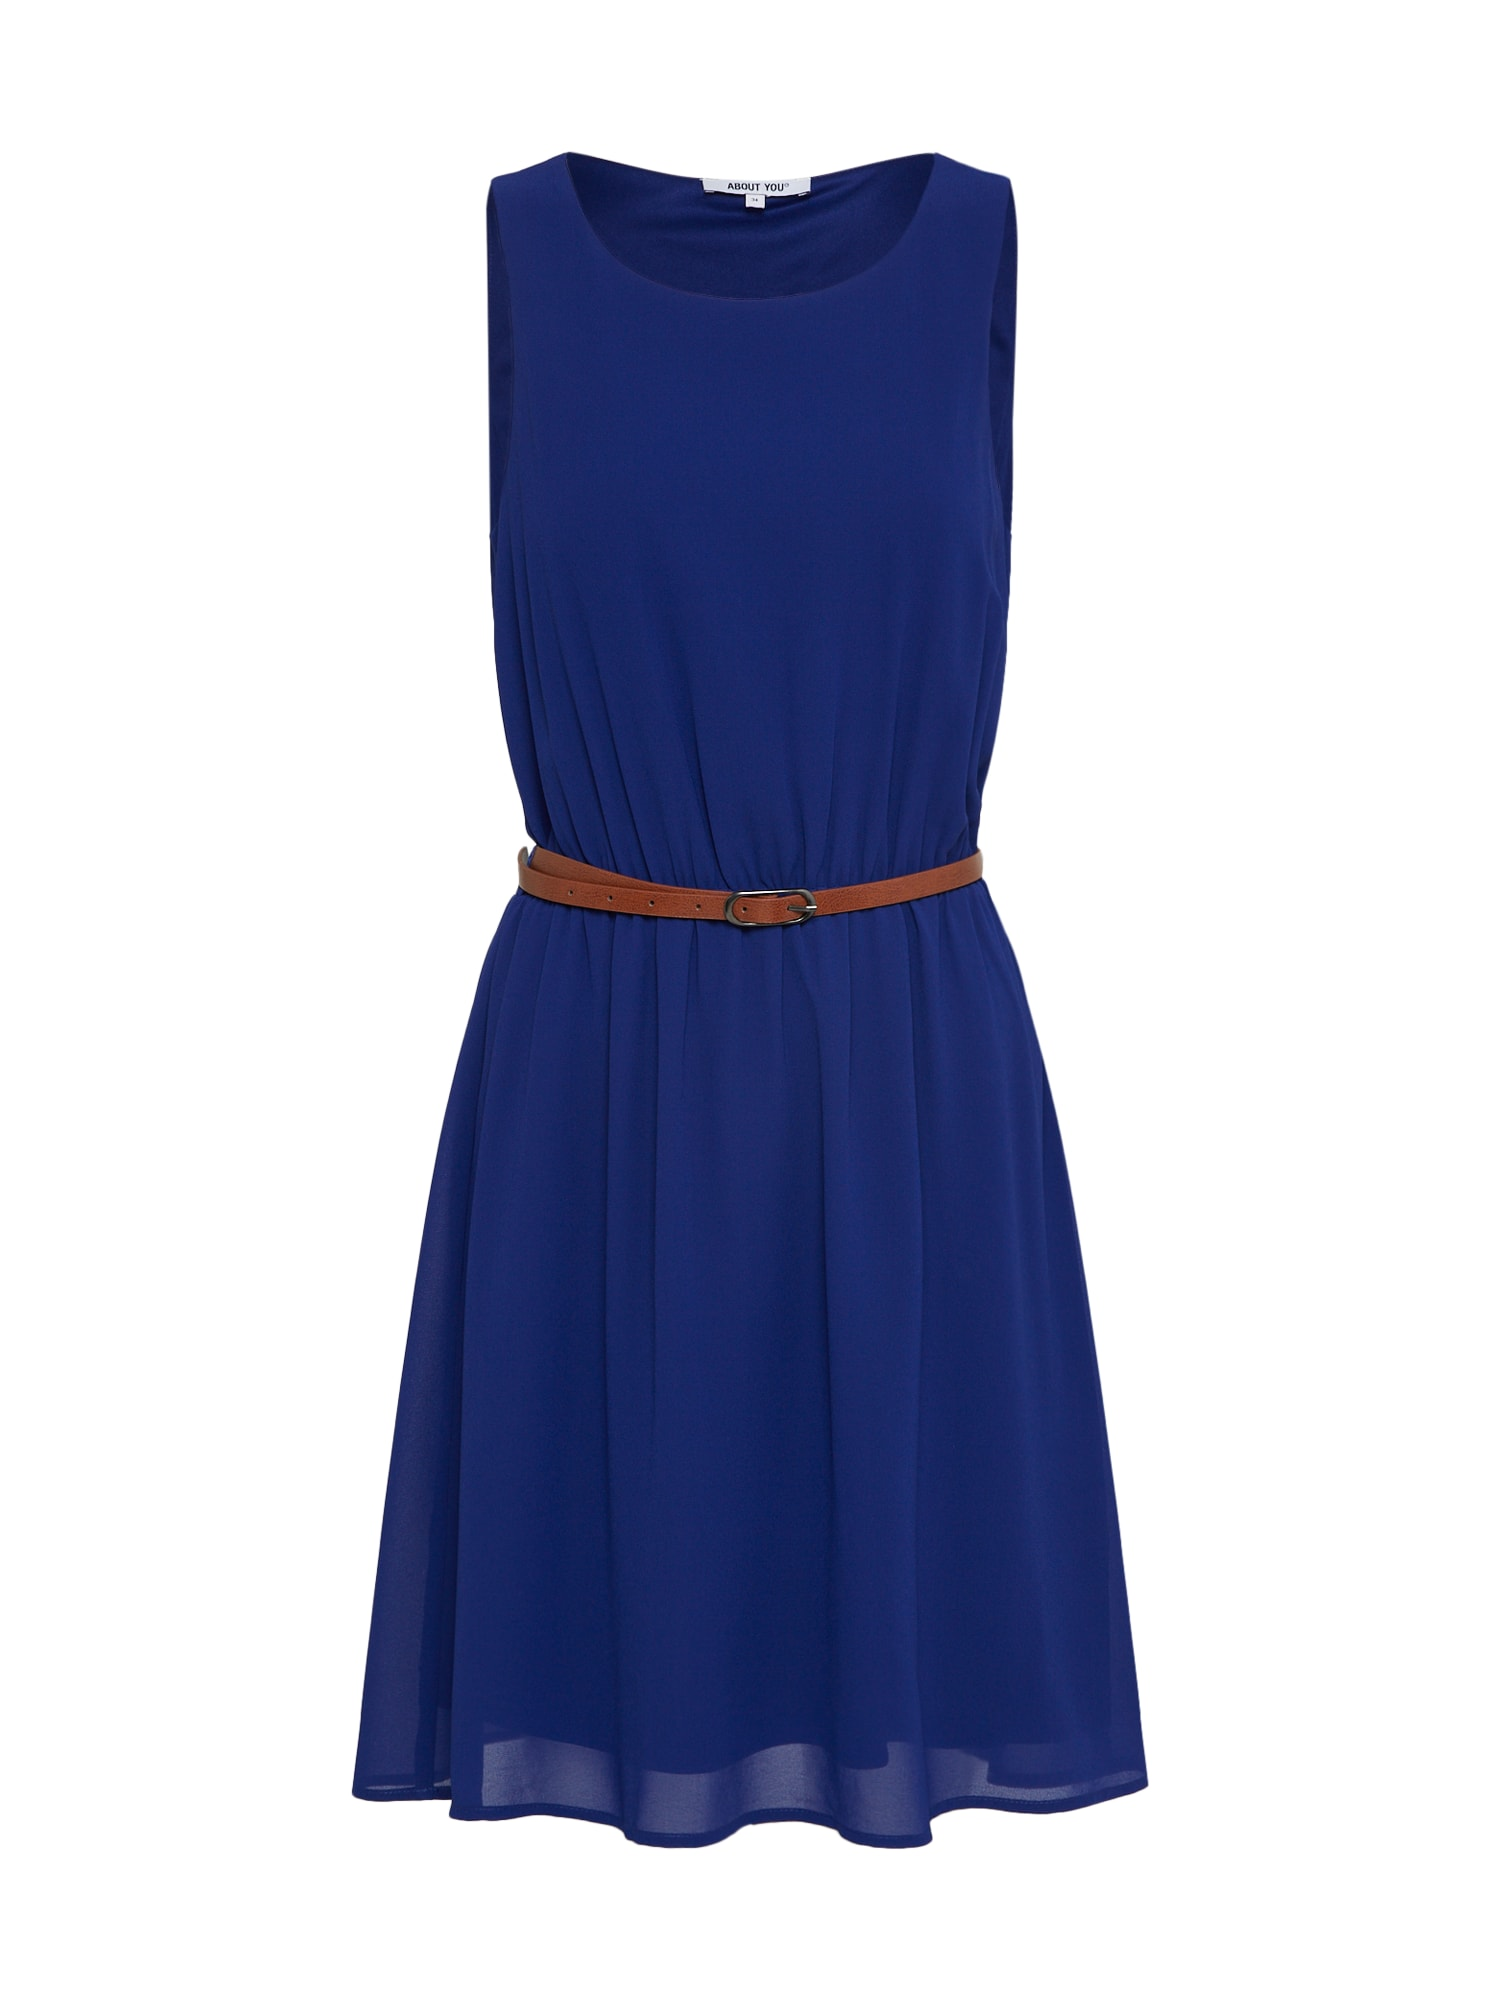 ABOUT YOU Cocktailjurk 'Susann' royal blue/koningsblauw